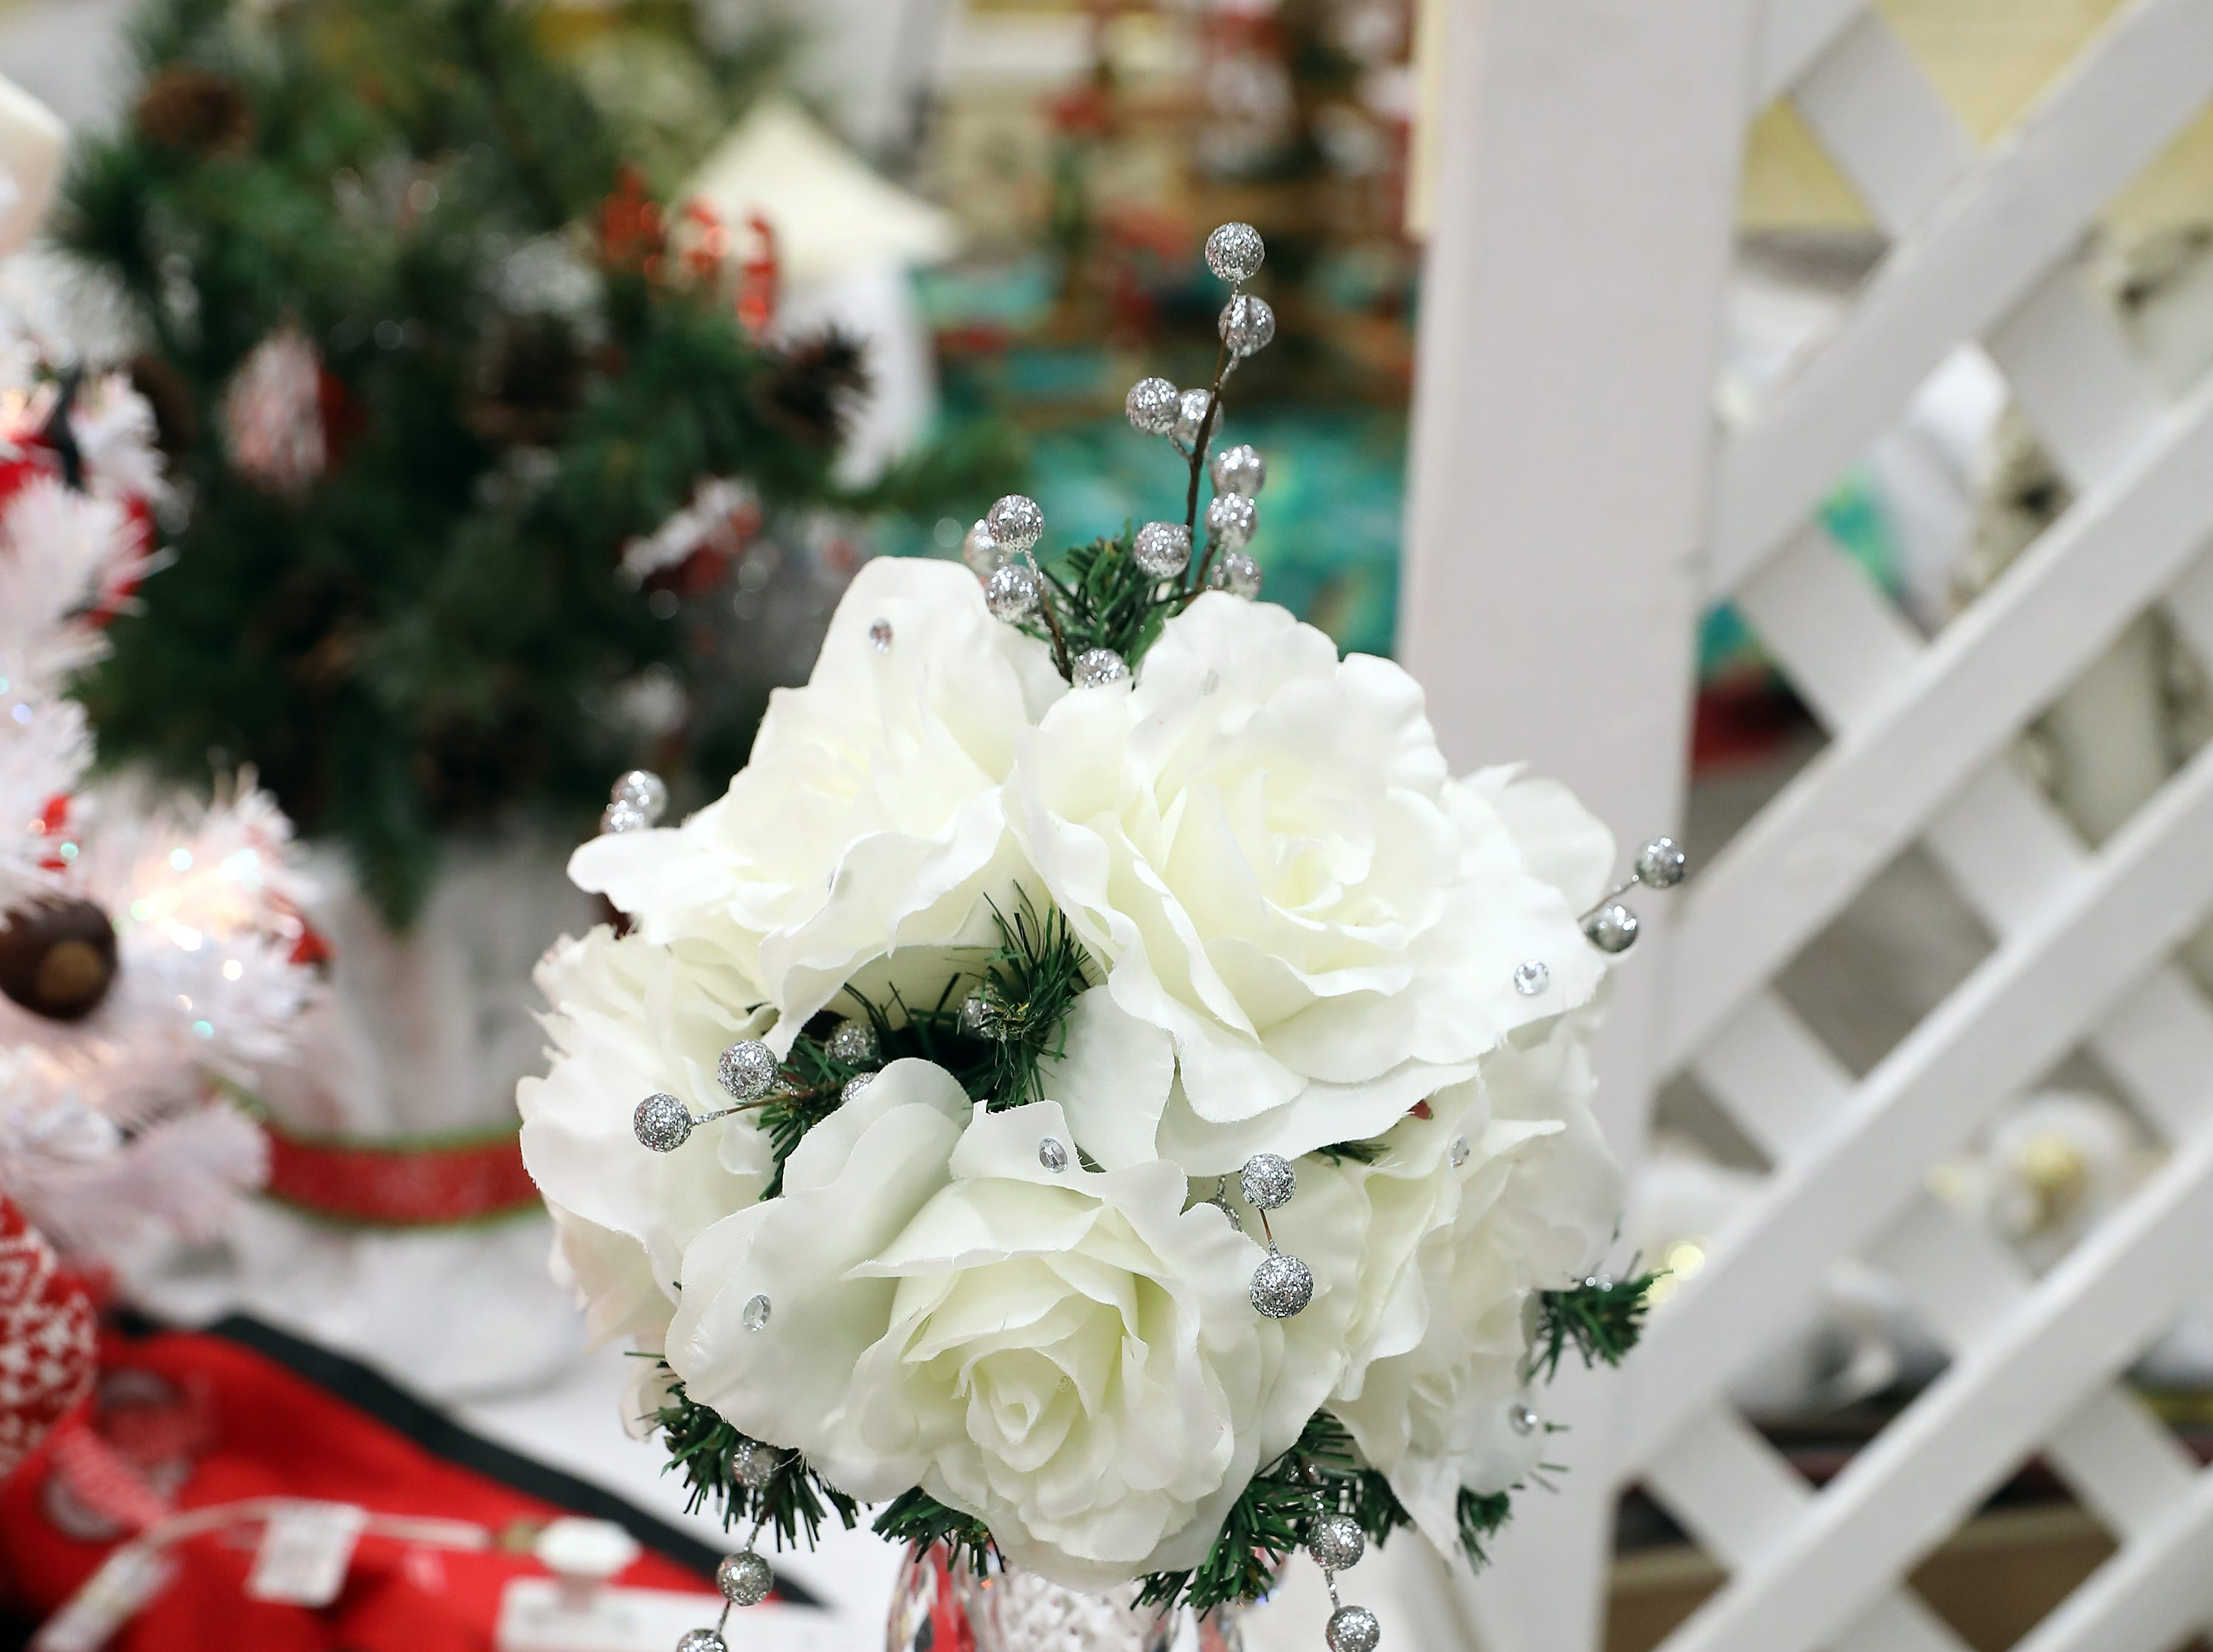 "80	11:45 AM	Zanesville Museum of Art	Centerpiece	White Christmas	A 22'"" tall white flower arrangement with tear drop glass crystals and tall glass vase.		ZMA Household Membership, a woodland themed centerpiece, a package of hostess napkins and 4 wooden holiday ornaments."